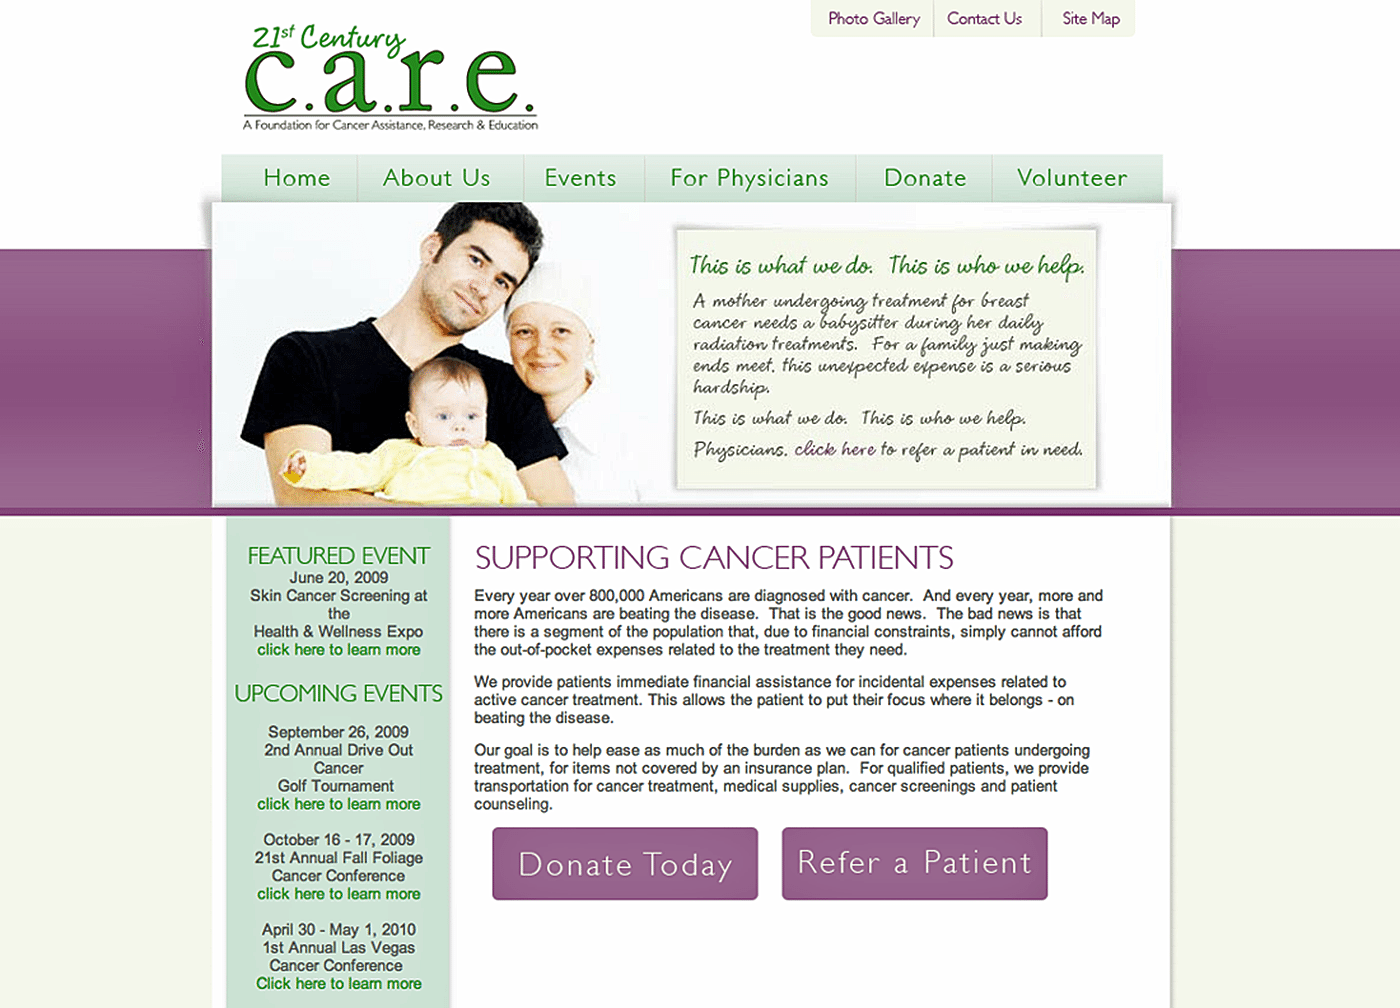 Healthcare Website Design Agency Creative | 21st Century Care